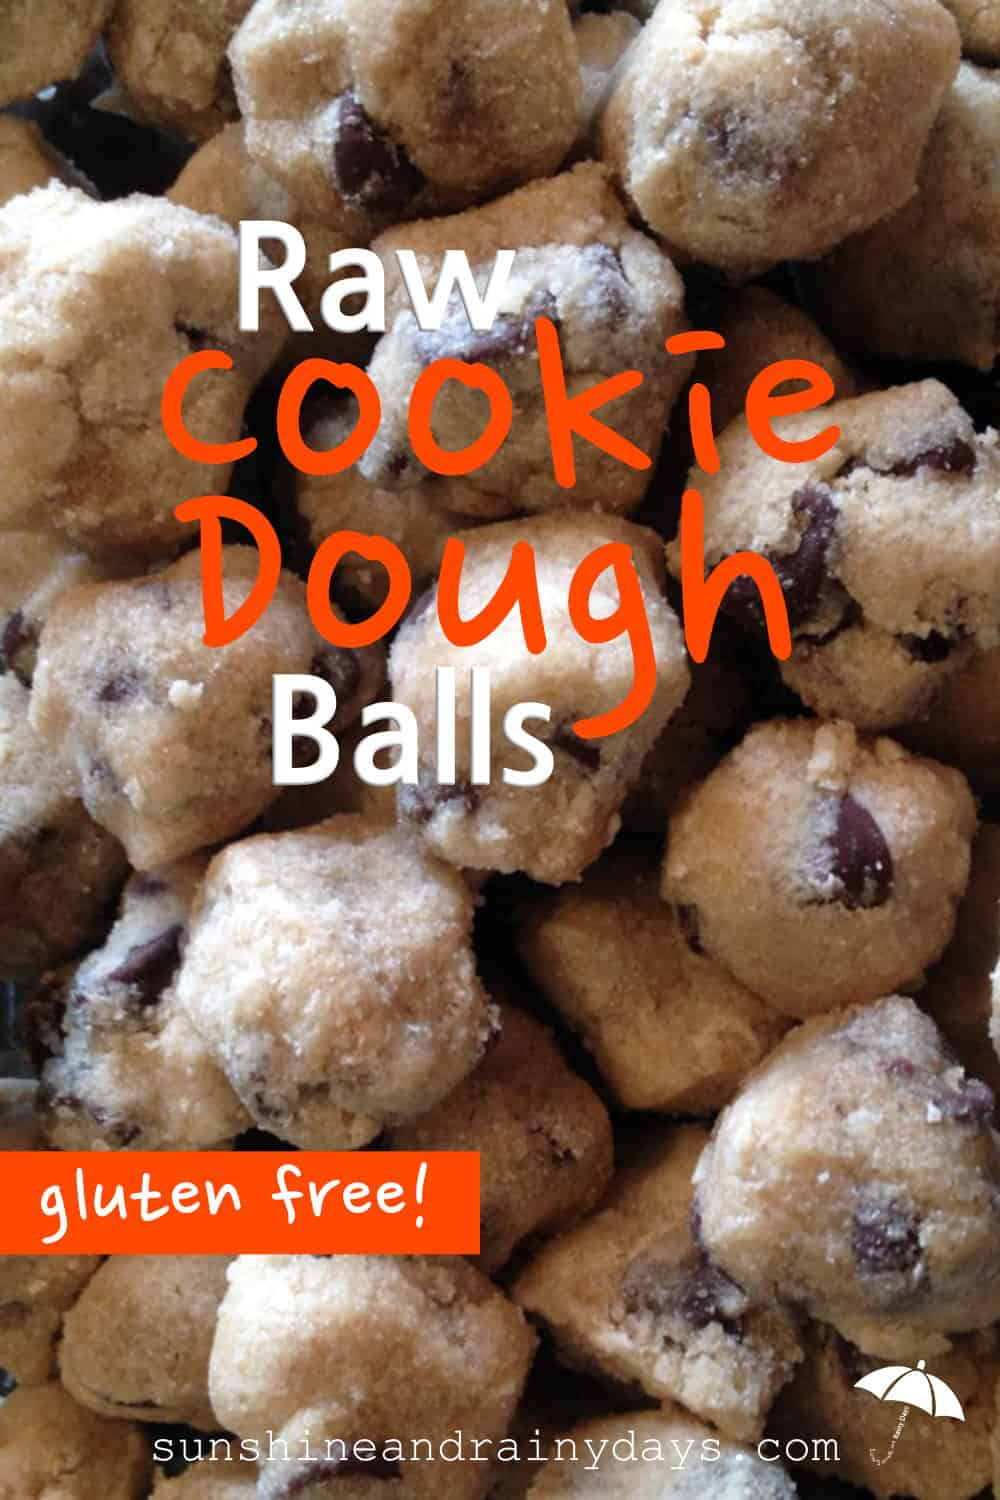 The best part of baking cookies is sneaking a little raw cookie dough, right? You know you shouldn't because, well, raw eggs! You do anyway though because it's just so delightful! Fear the raw egg no more and make cookie dough that was never meant for baking! Now that's my kind of cookie dough!